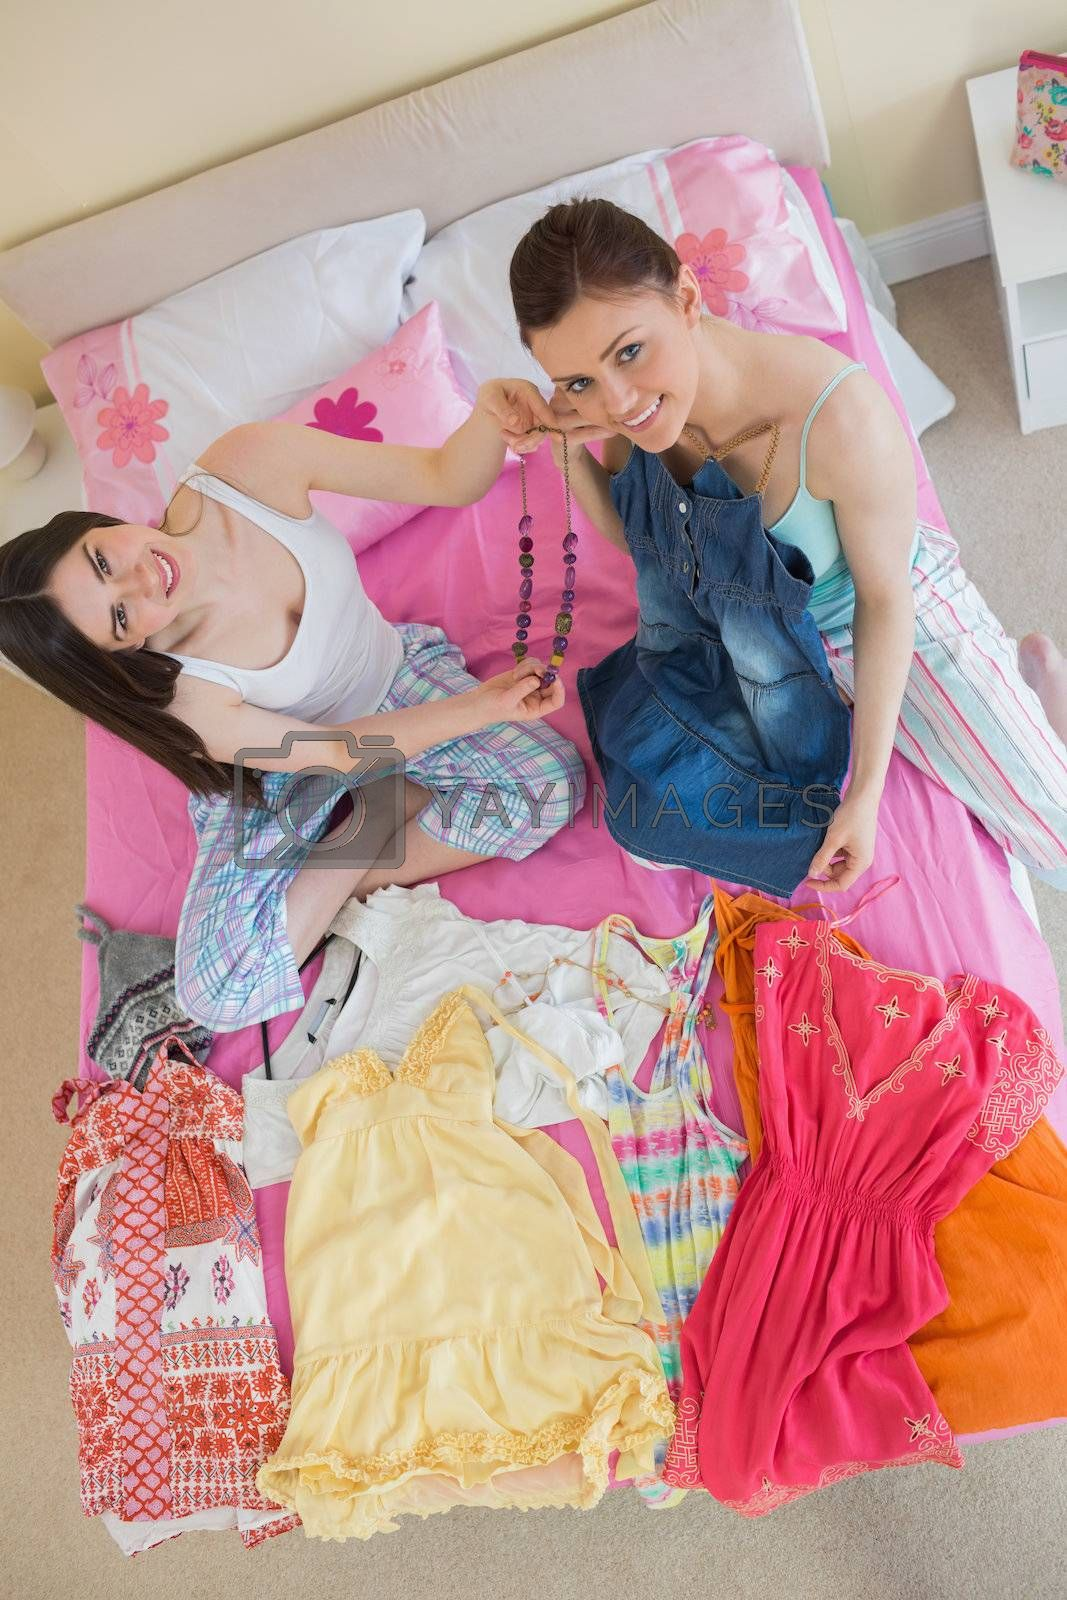 Cute girls making an outfit and looking at camera at sleepover by Wavebreakmedia